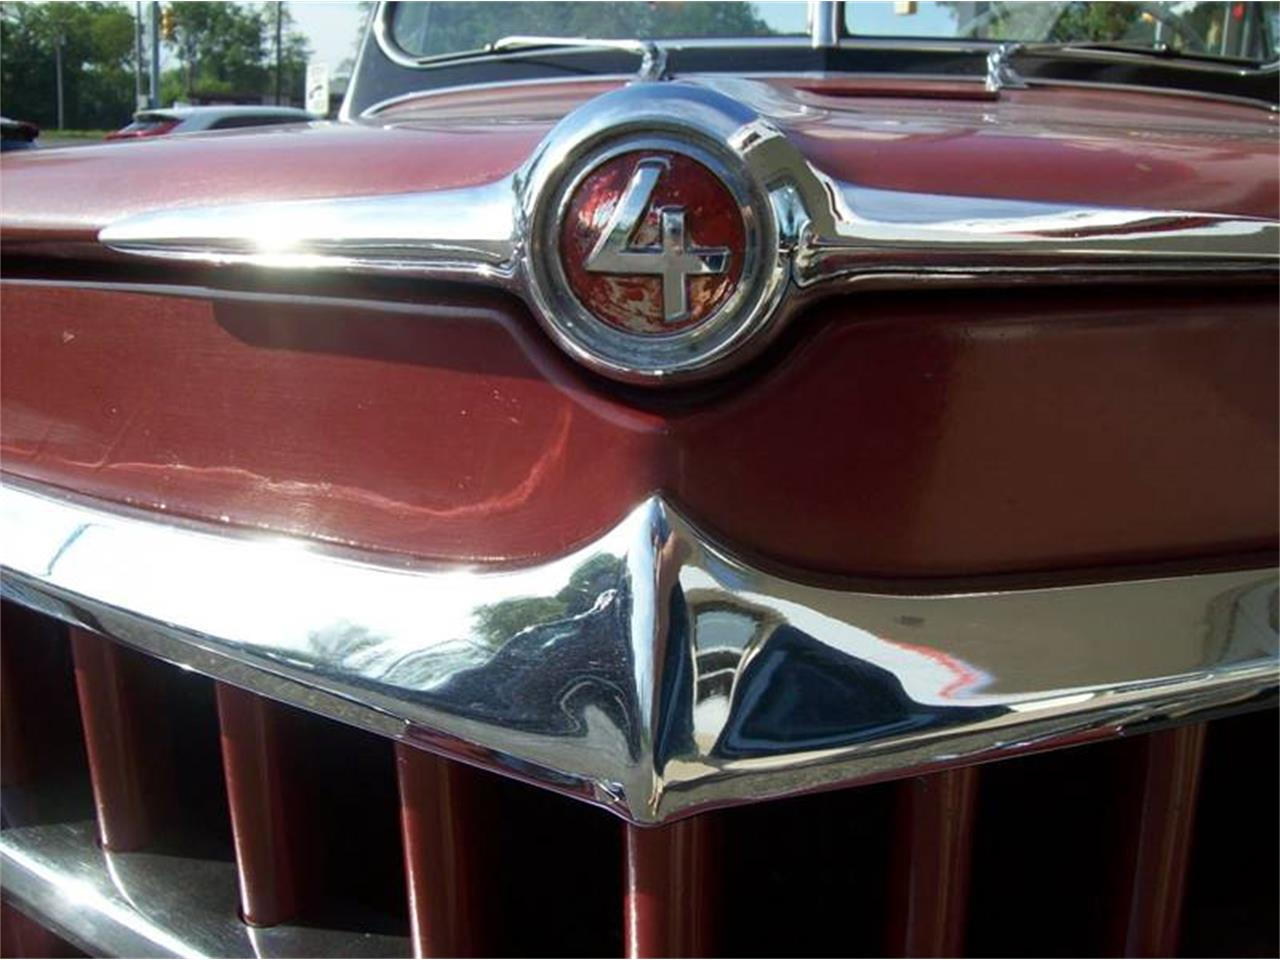 Large Picture of 1951 Willys Jeepster located in Michigan - $20,900.00 Offered by Verhage Mitsubishi - NI8U